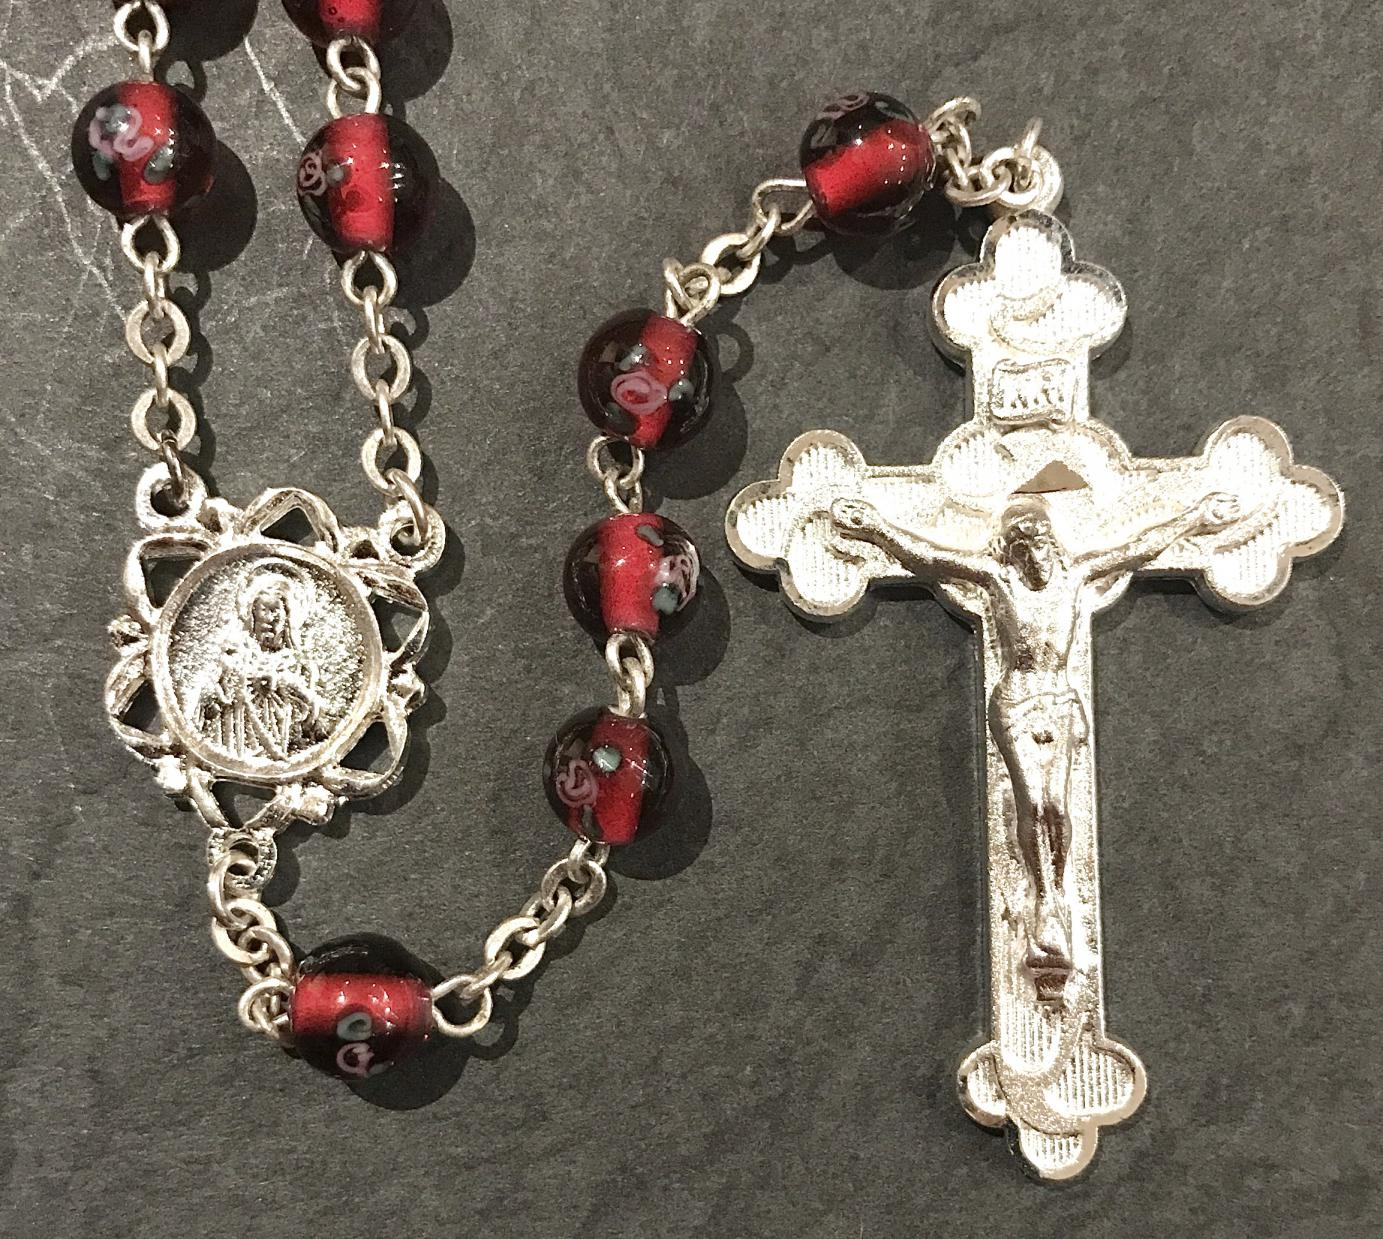 6mm HAND PAINTED RUBY LAMP BEAD ROSARY WITH STERLING SILVER PLATED CRUCIFIX, CENTER, WIRE, CHAIN GIFT BOXED